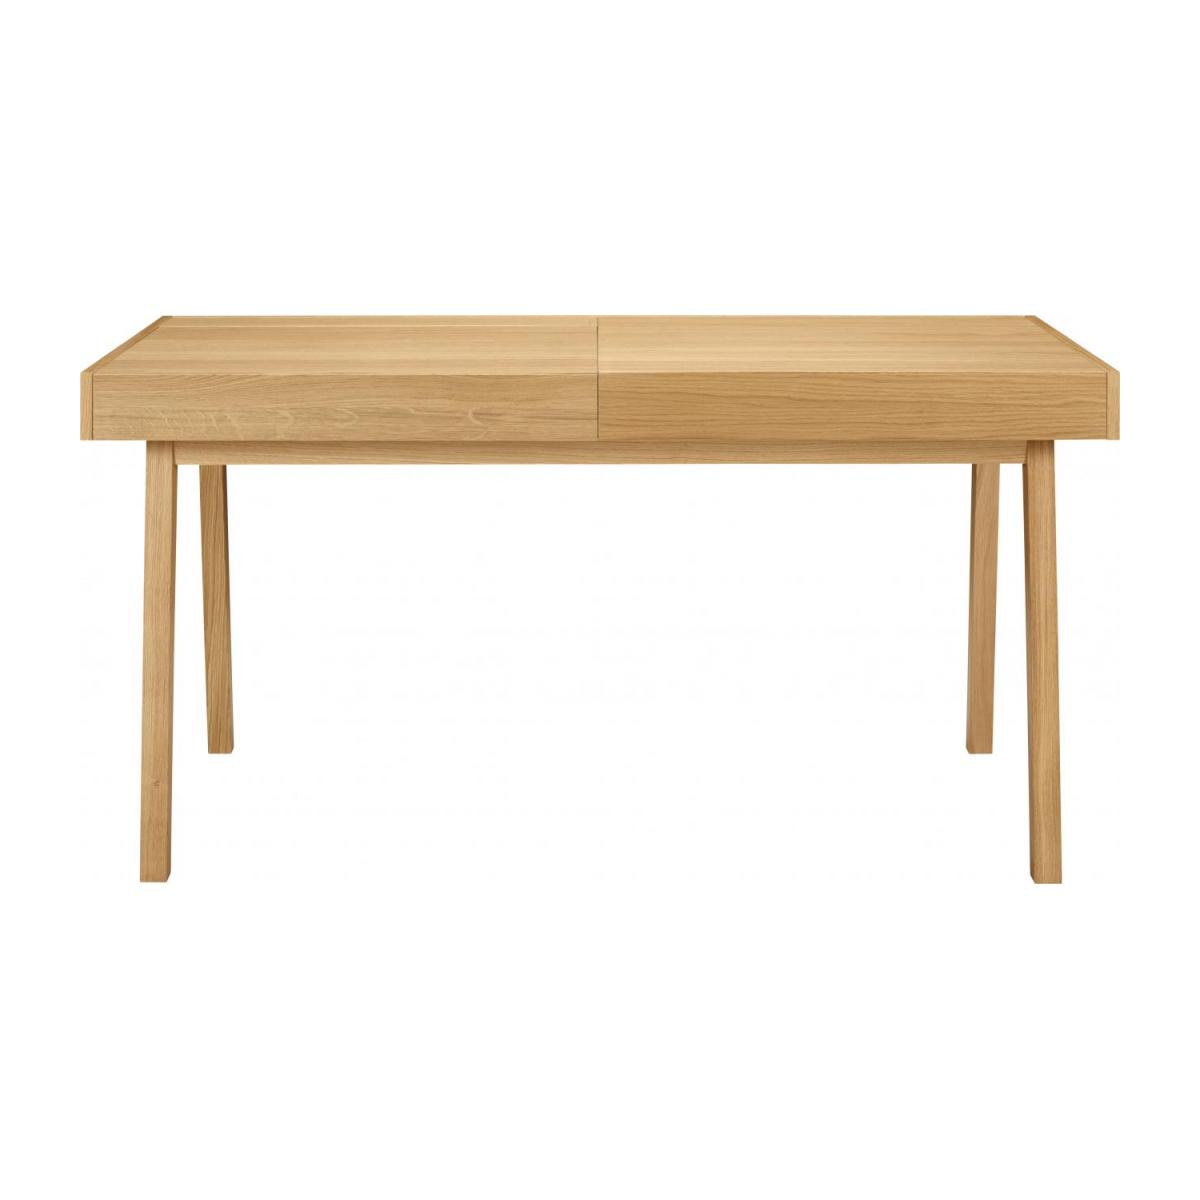 Big oak desk n°6